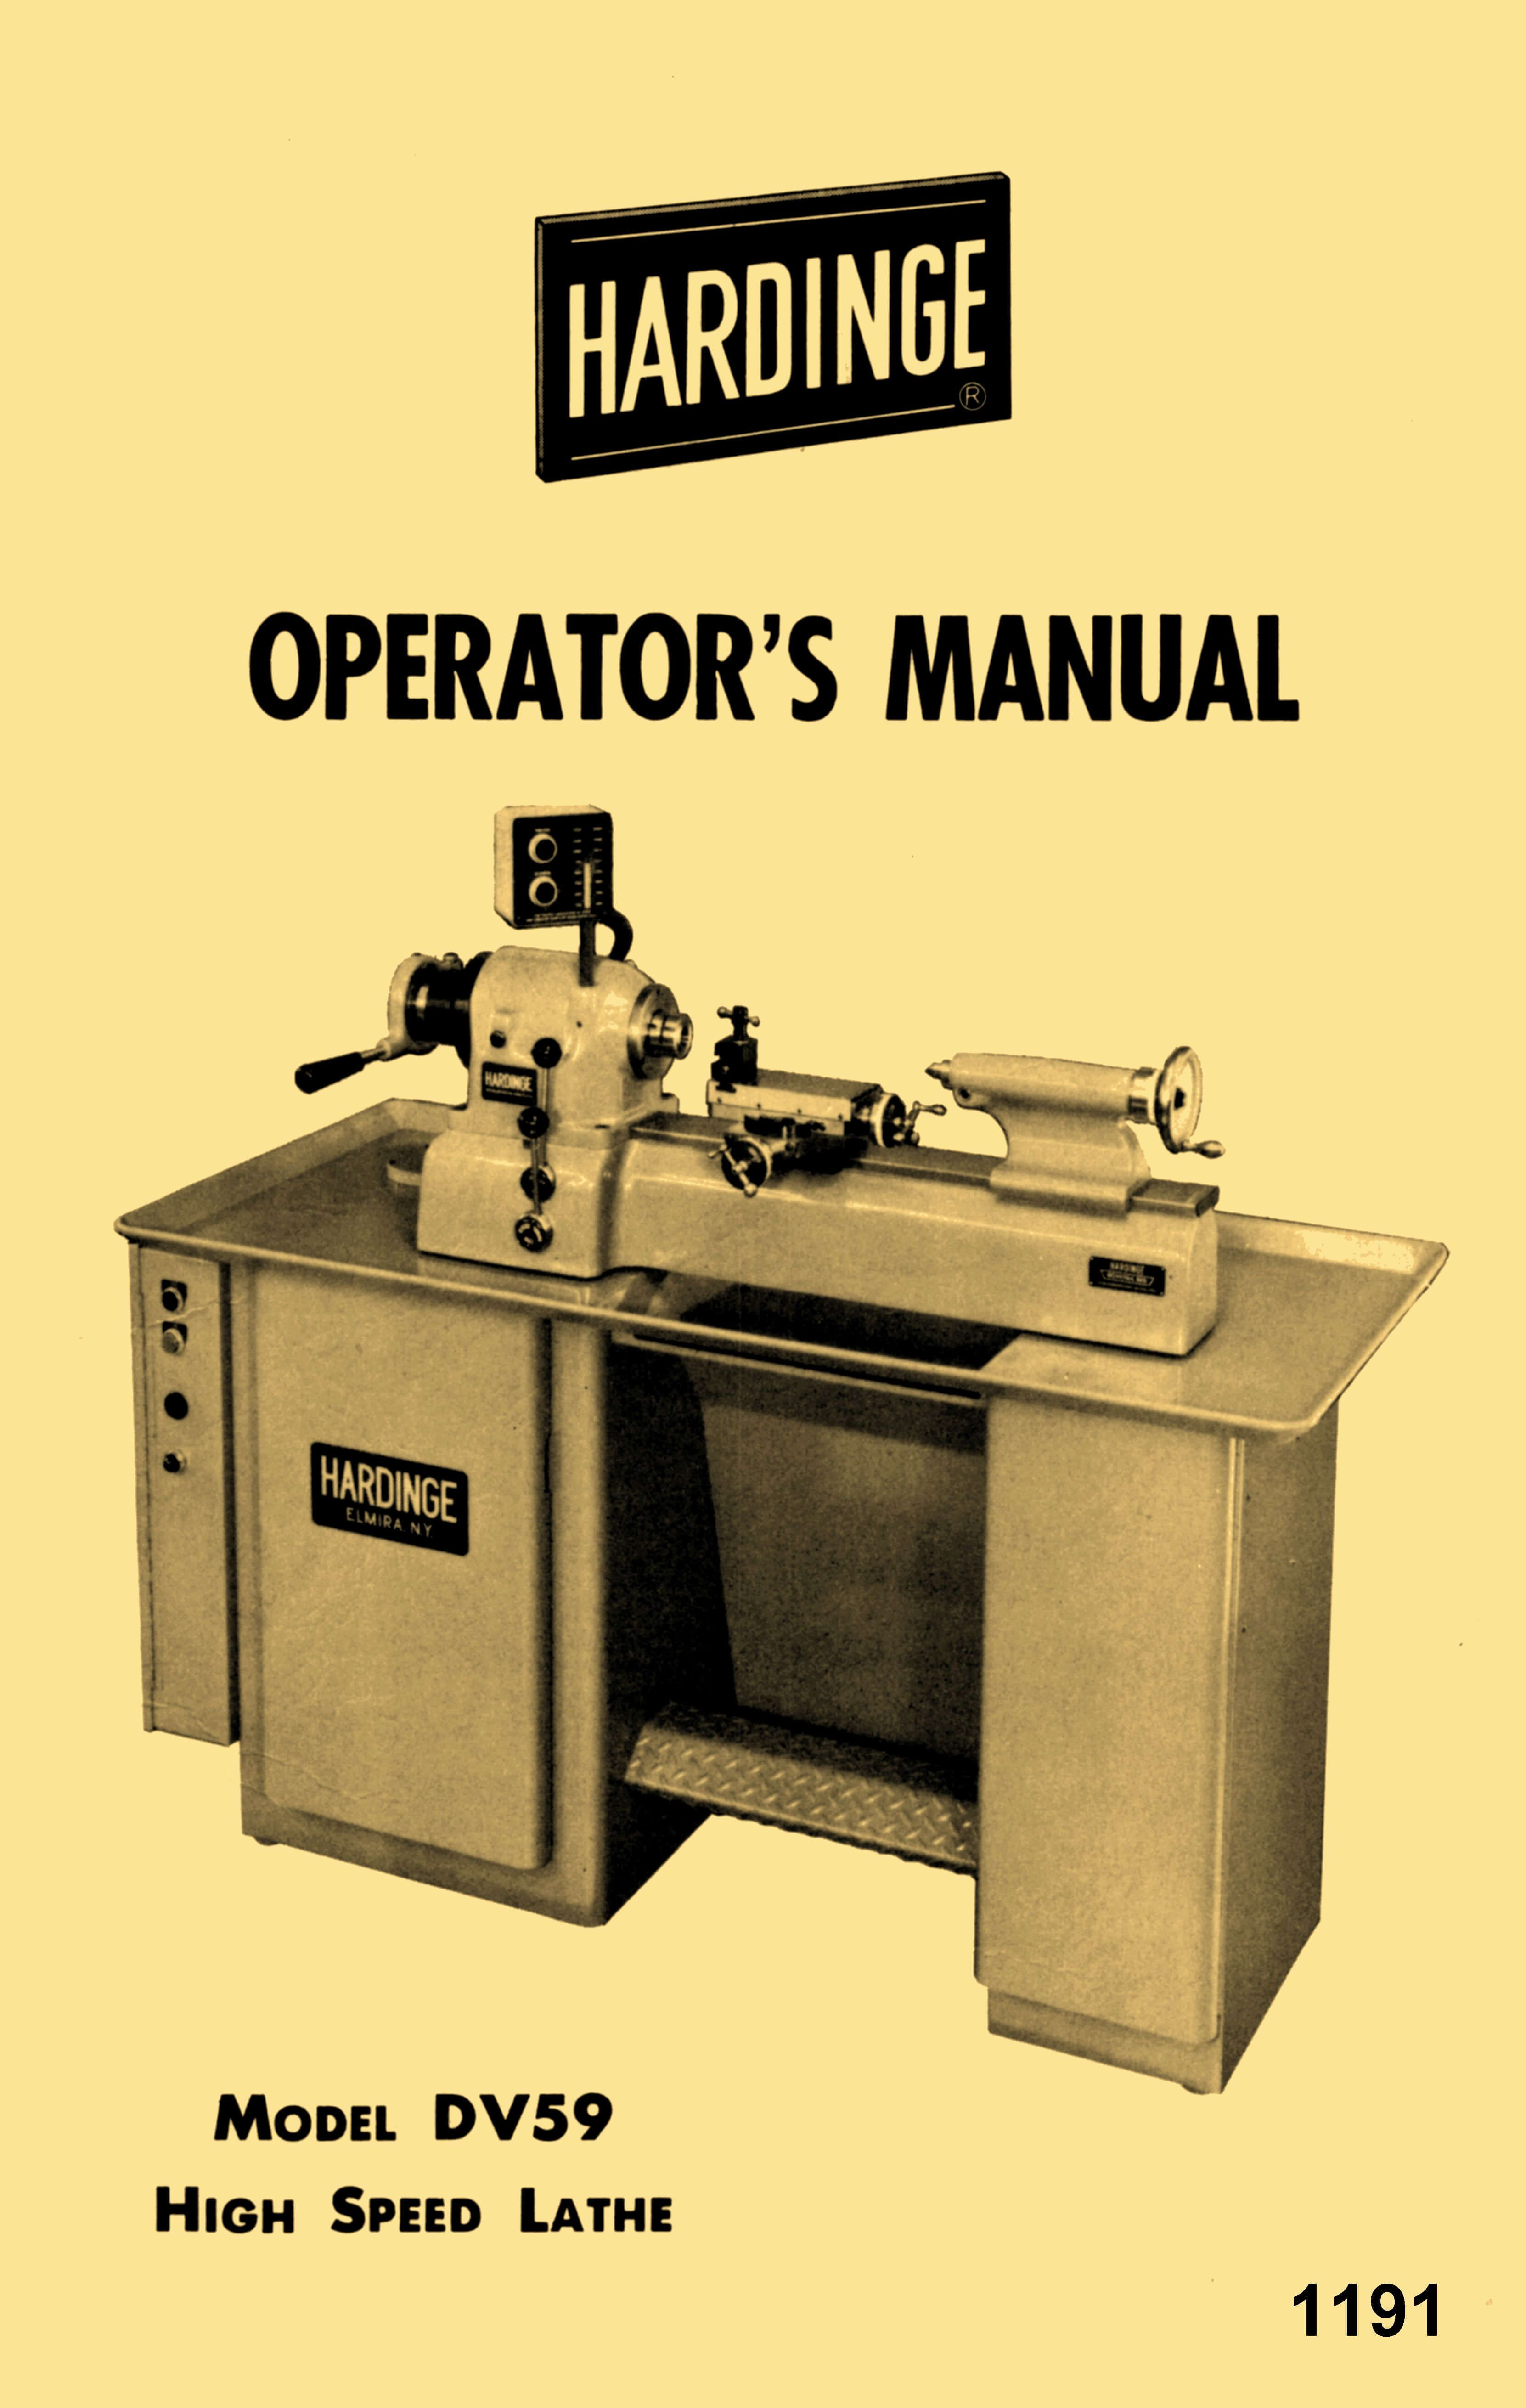 HARDINGE Older DV59 Metal Lathe Operator's Manual | Ozark ... on